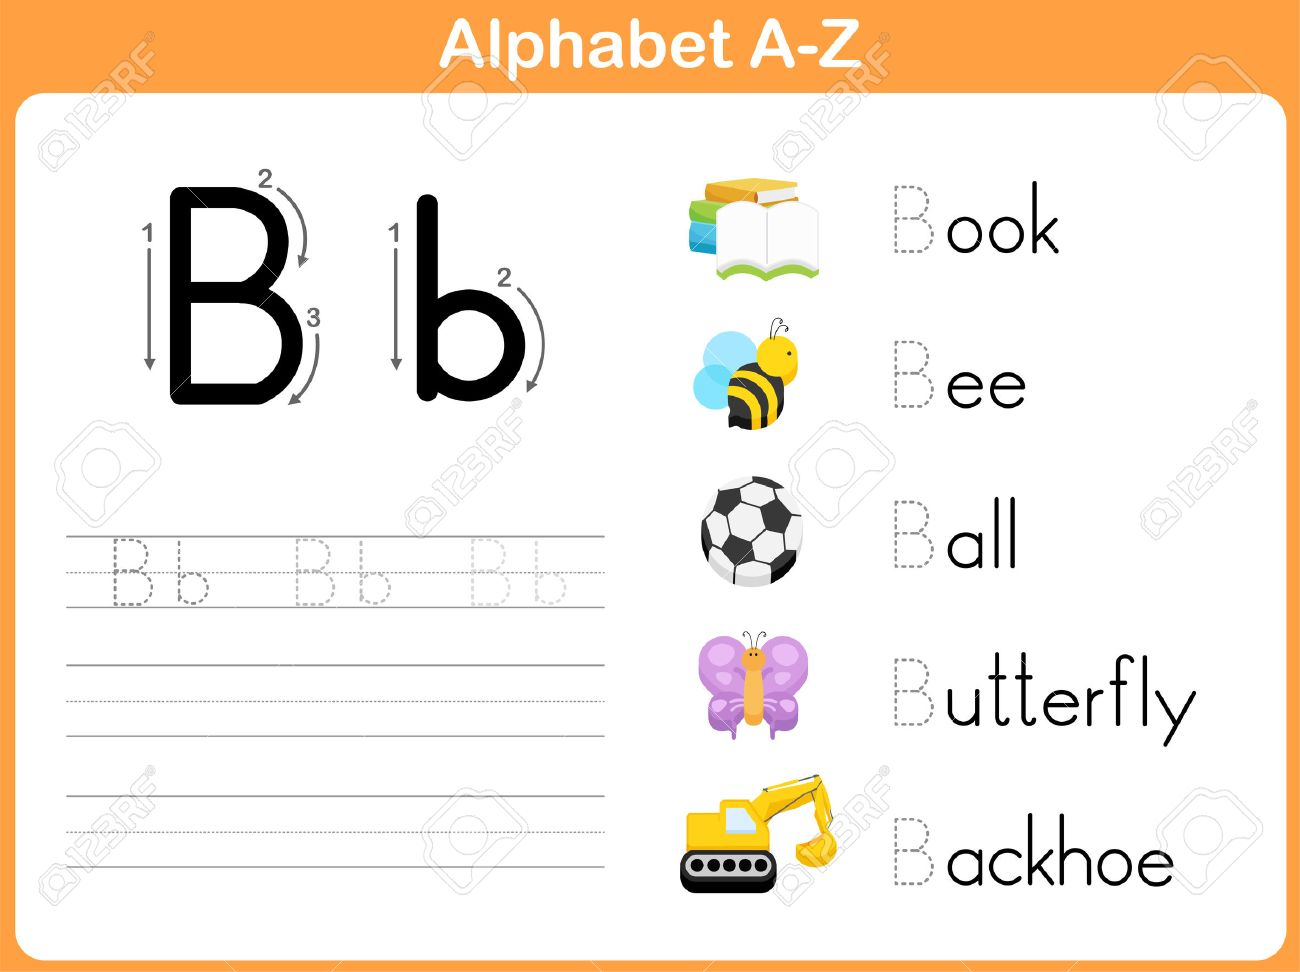 Alphabet Tracing Worksheet: Writing A-Z pertaining to Alphabet Worksheets A-Z